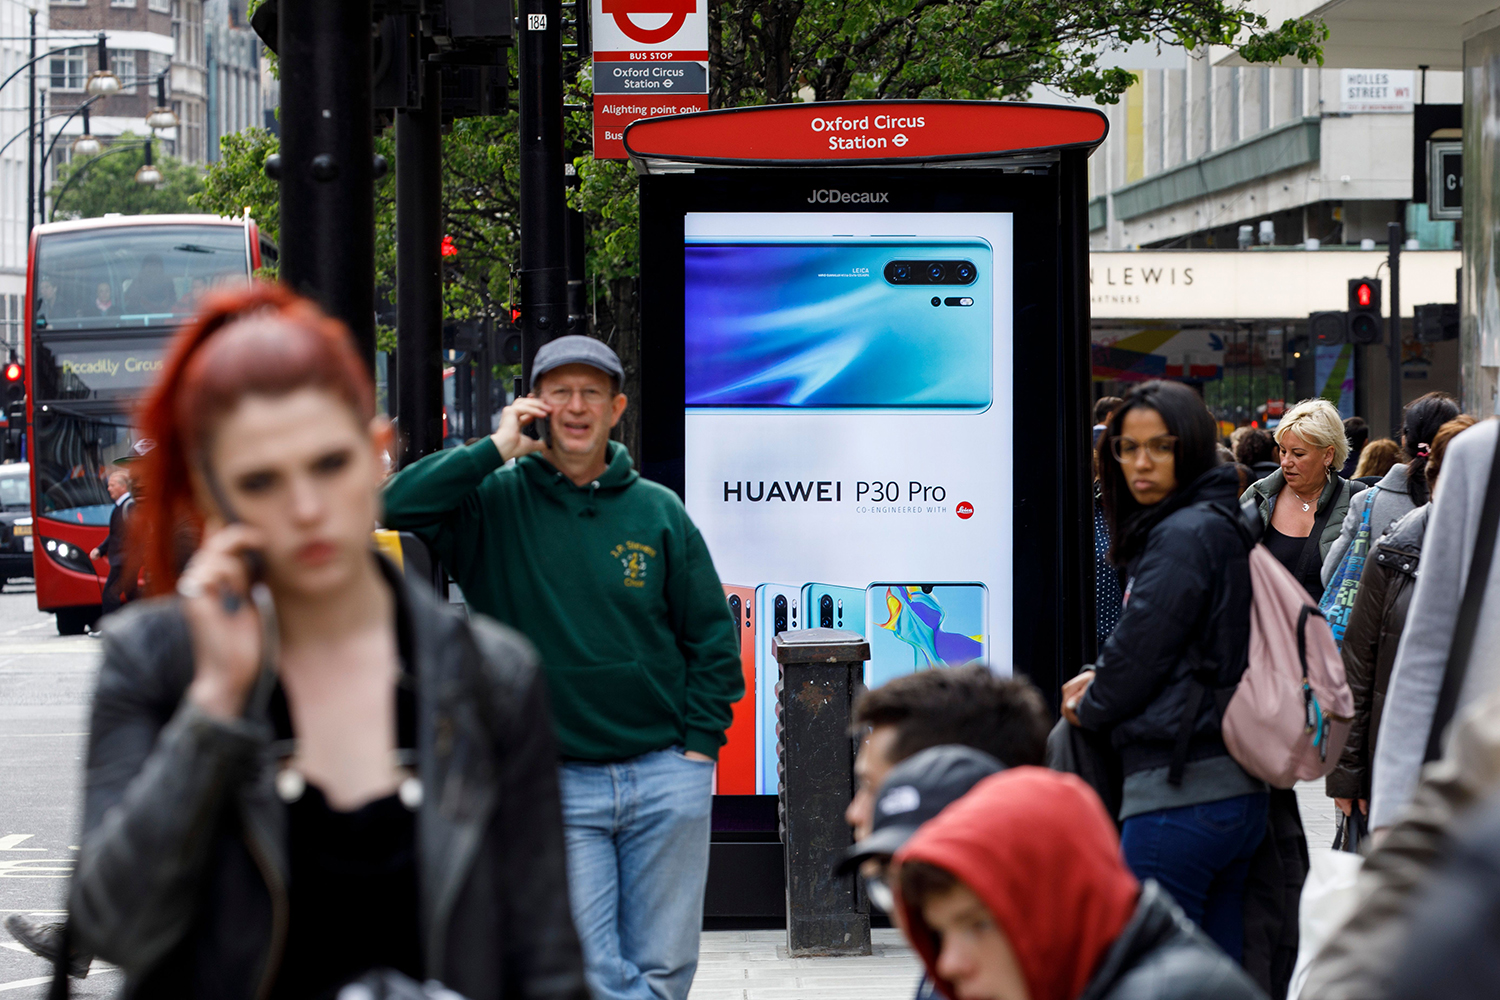 Pedestrians use their cell phones near a Huawei advertisement at a bus stop in central London on April 29, 2019.